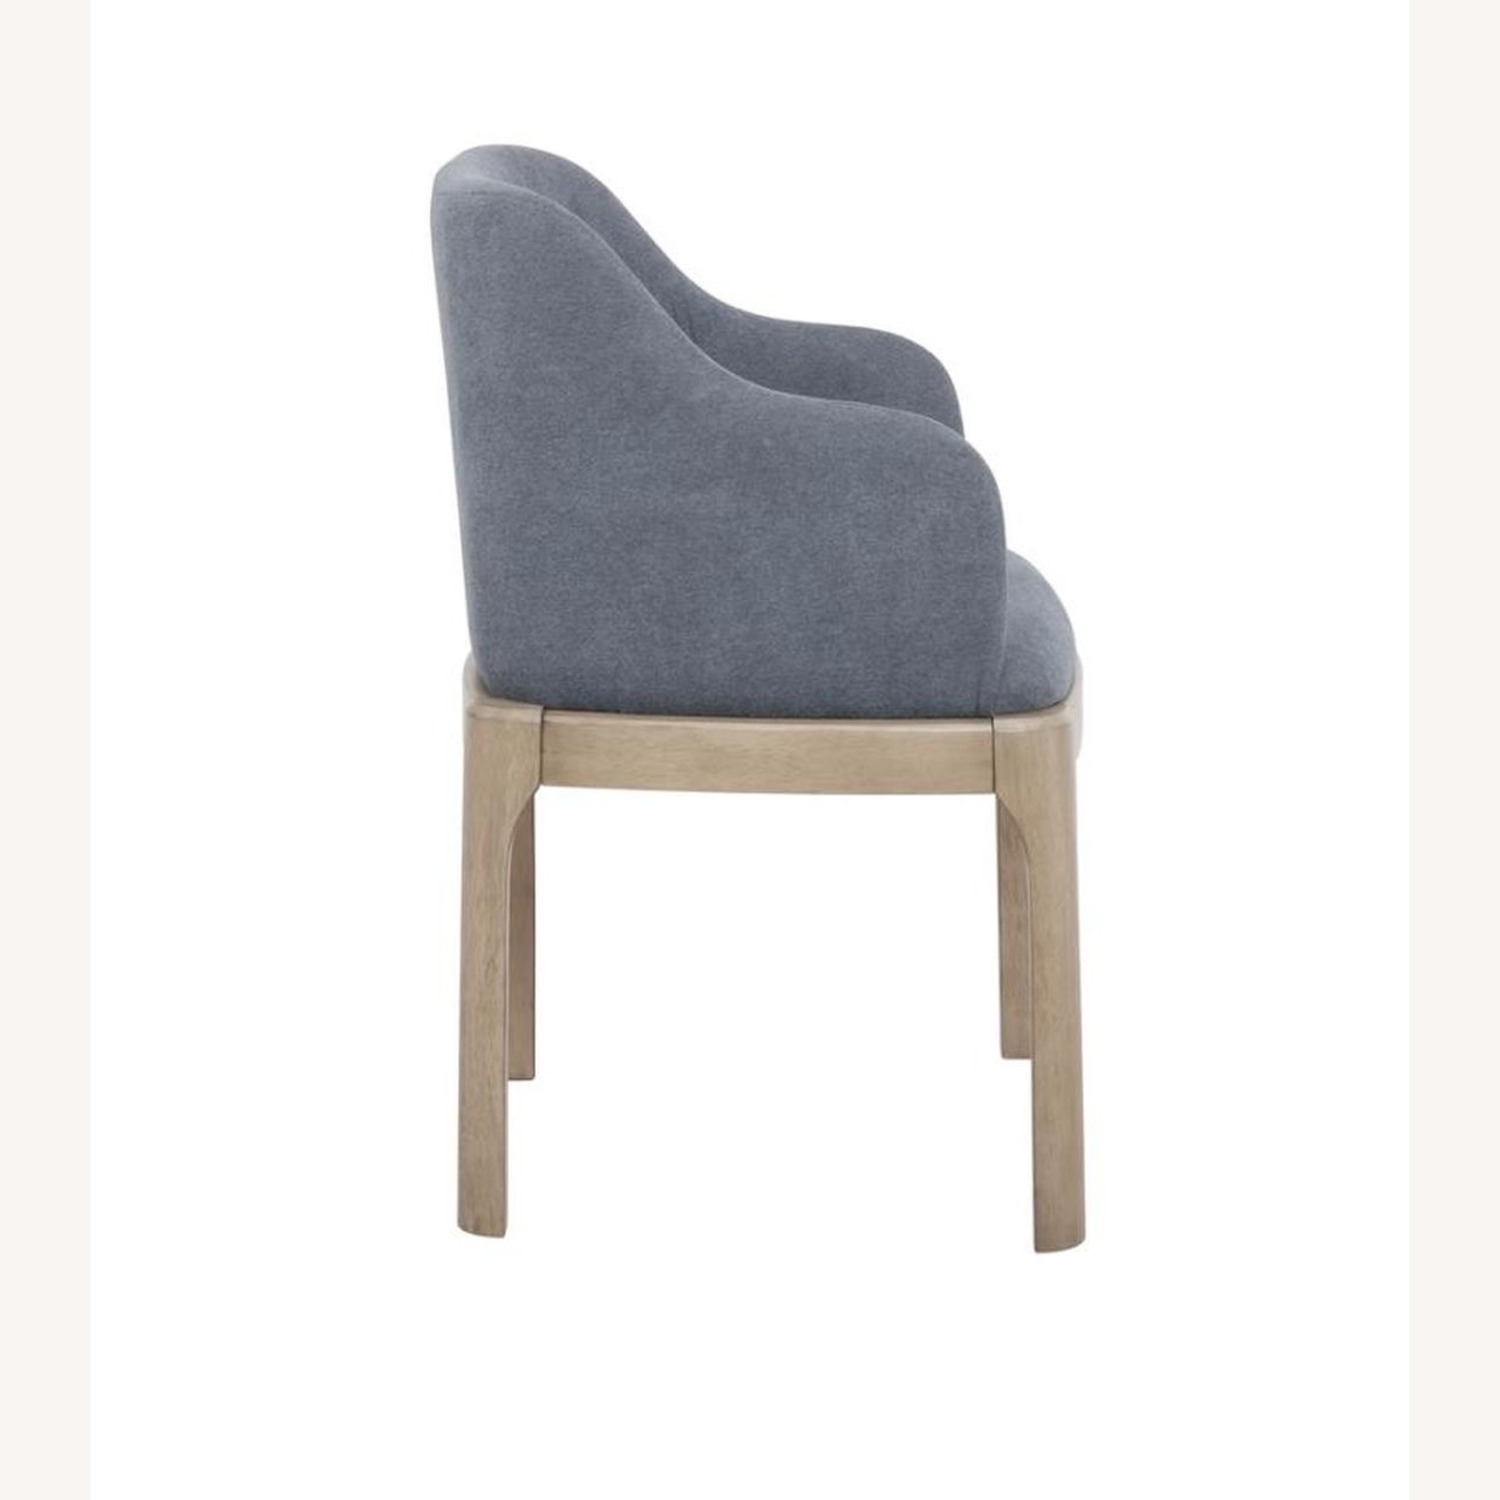 Modern Danish Style Arm Chair In Denim Blue - image-2